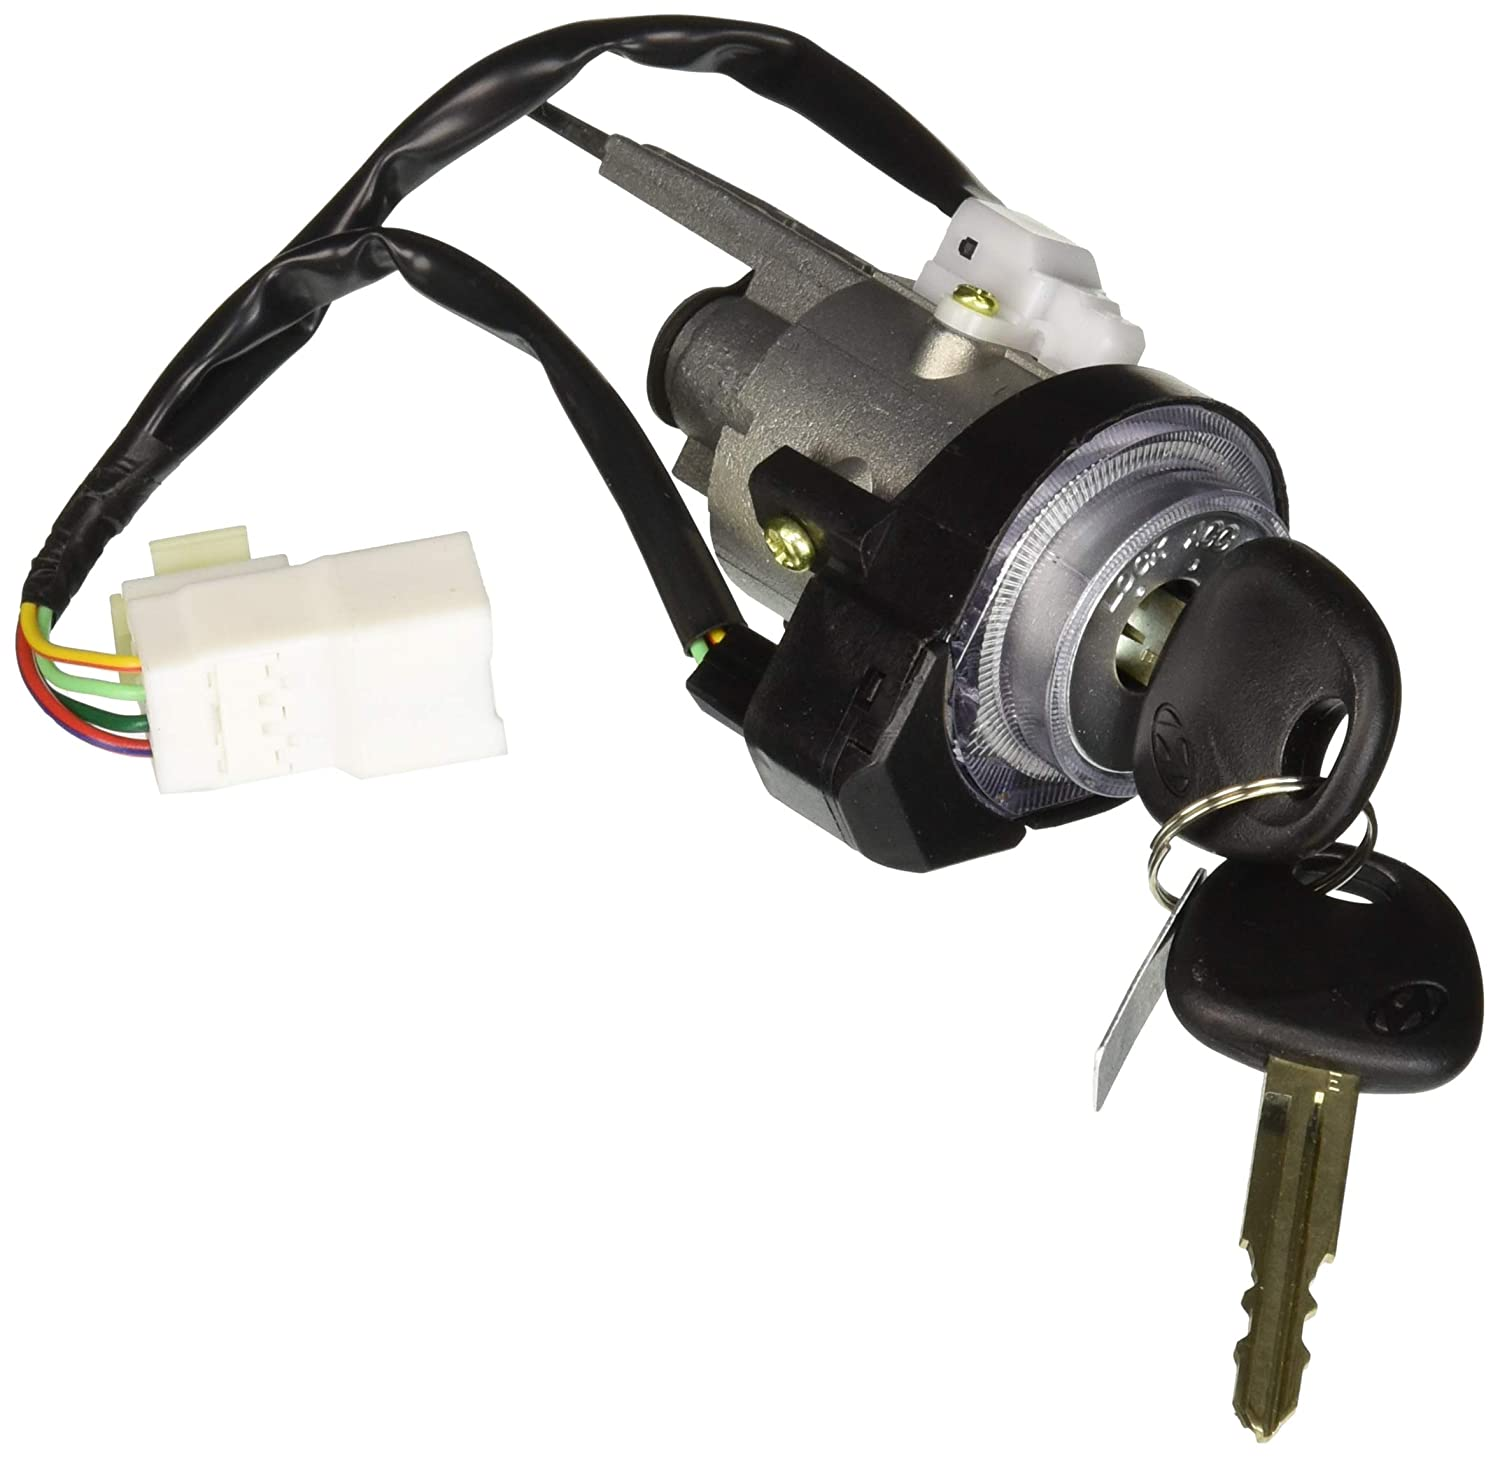 Genuine Hyundai 81920-26A50 Steering and Ignition Lock Cylinder Assembly